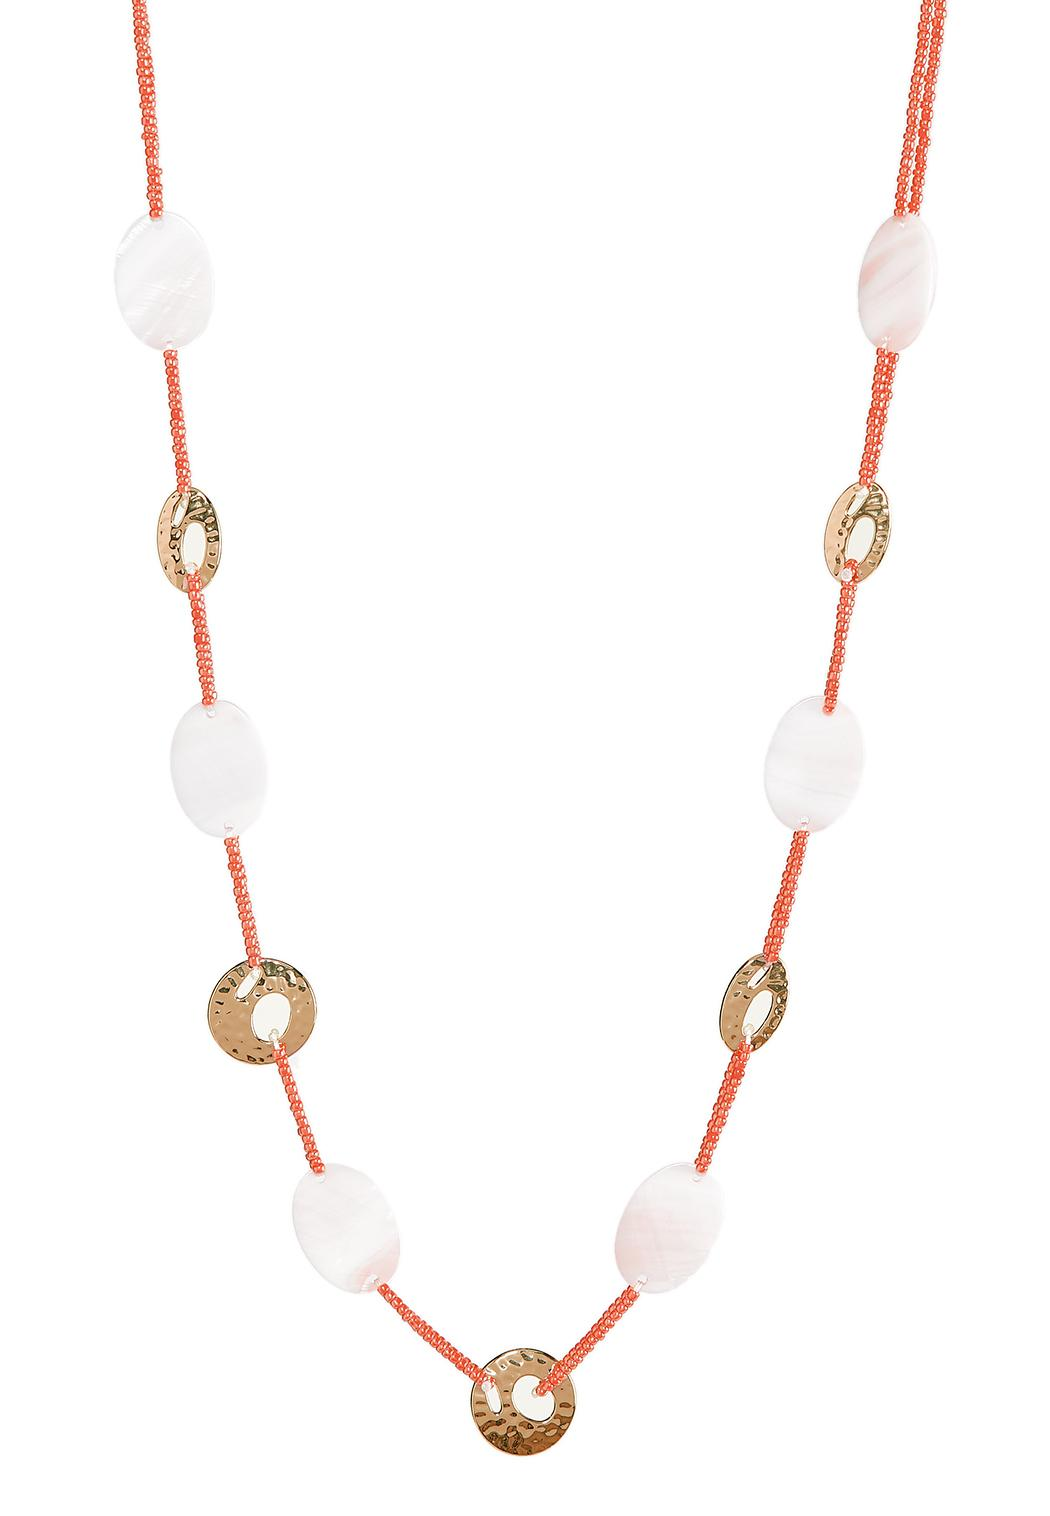 Shell Seed Cord Necklace